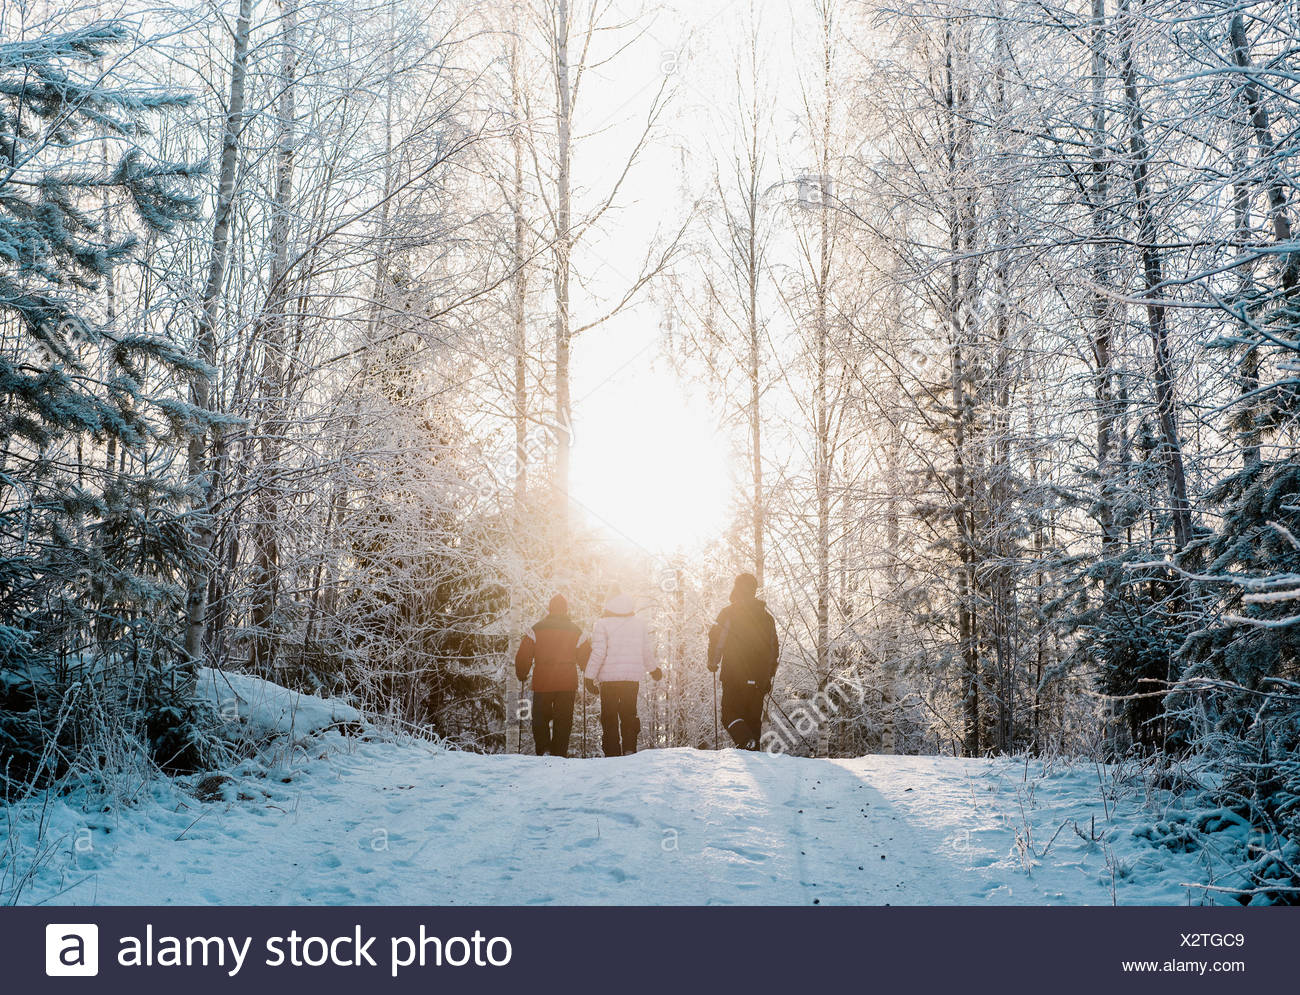 Three people nordic walking in snow covered forest - Stock Image